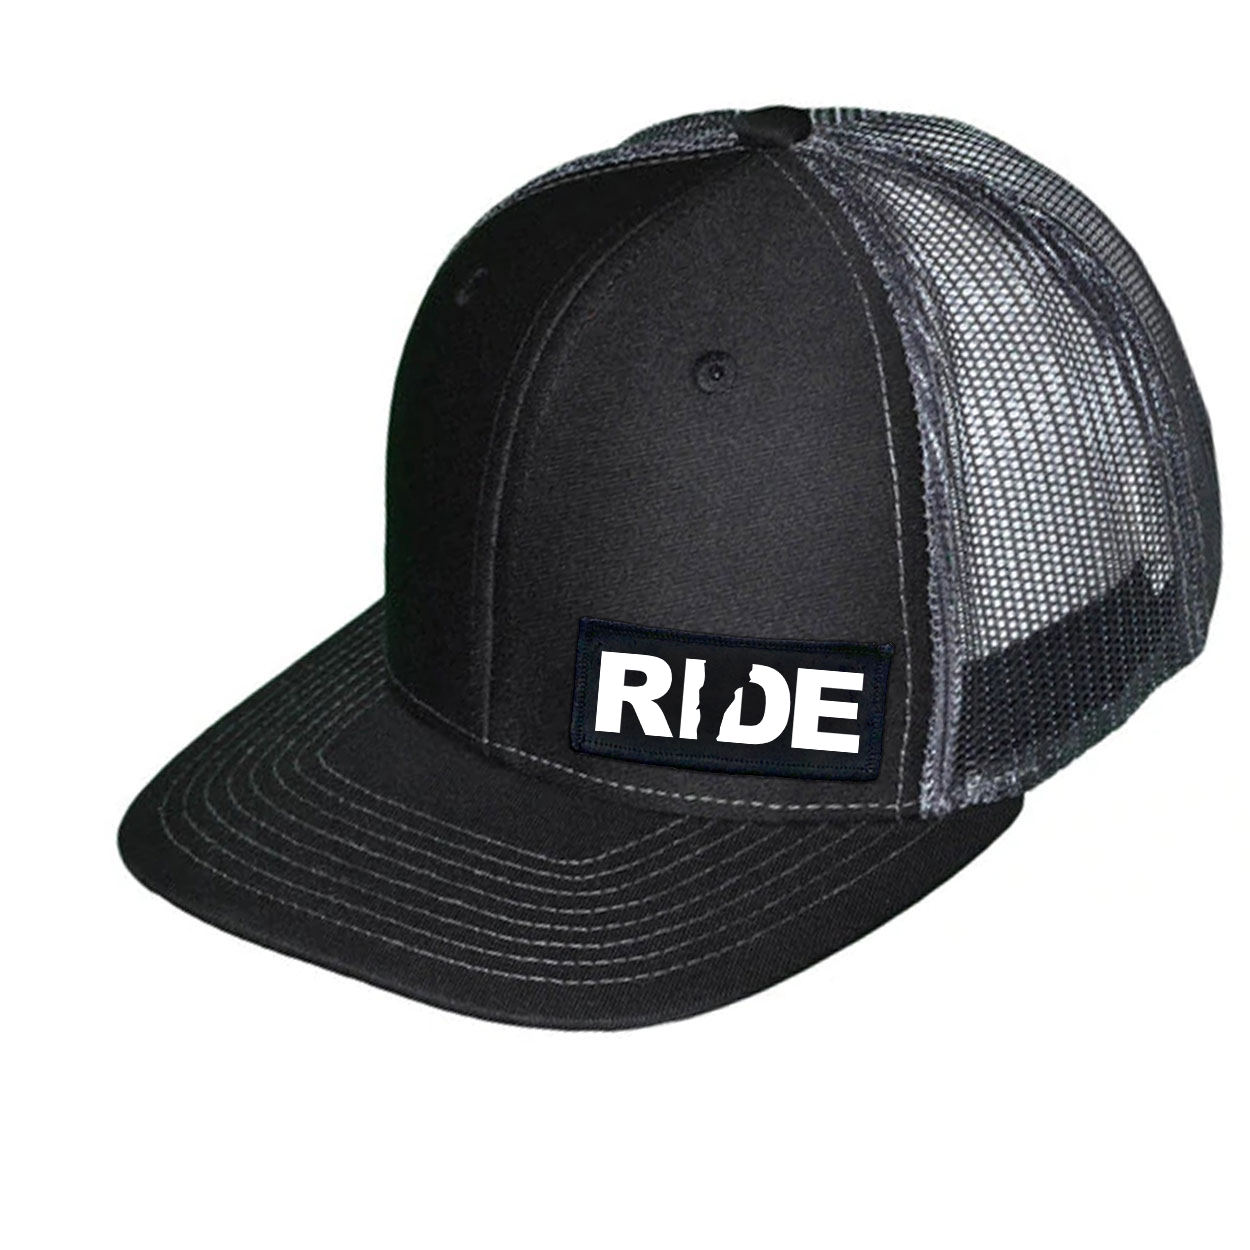 Ride Vermont Night Out Woven Patch Snapback Trucker Hat Black/Dark Gray (White Logo)